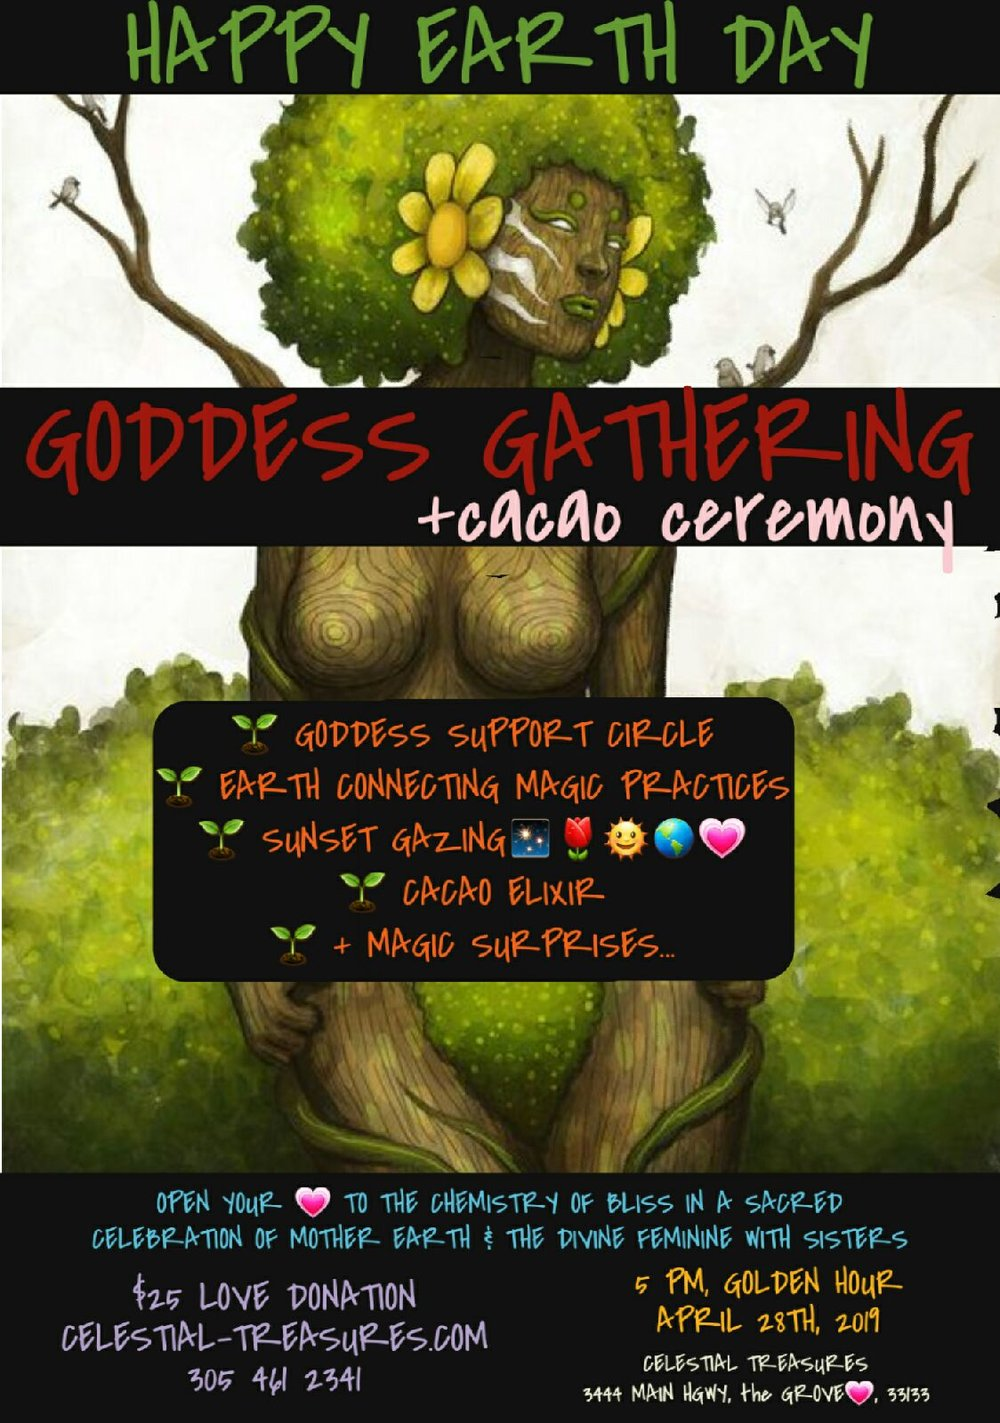 Join us in a celebration of mother earth and the divine feminine in a support circle with other goddesses.  We will meet at Celestial Treasures at 5 pm, and walk together to Peacock Park to watch the sunset over the ocean as we share our own stories, wisdom, and questions and support each other in a safe, magical space.  -Goddess Support Circle  -Earth Connecting Magic Practices  -Sunset Gazing  -Cacao Elixir  -+ Magic Surprises..  We will drink cacao elixir to open and heal our hearts with the vibrations of unconditional love and bliss. We will enjoy practices to strengthen our connection to the earth mother, and open ourselves to the unending bond of love, abundance and healing the earth mother shares with us all. Get ready for a very beautiful evening of healing, heart opening, creativity, magic, bliss, and true soul food. We would love to see you there!! Delicious vegan snacks and more surprises will be provided. Spaces are limited, so hurry sisters!!!  Link for tickets -  https://www.eventbrite.com/e/earth-day-goddess-gathering-tickets-59398922777